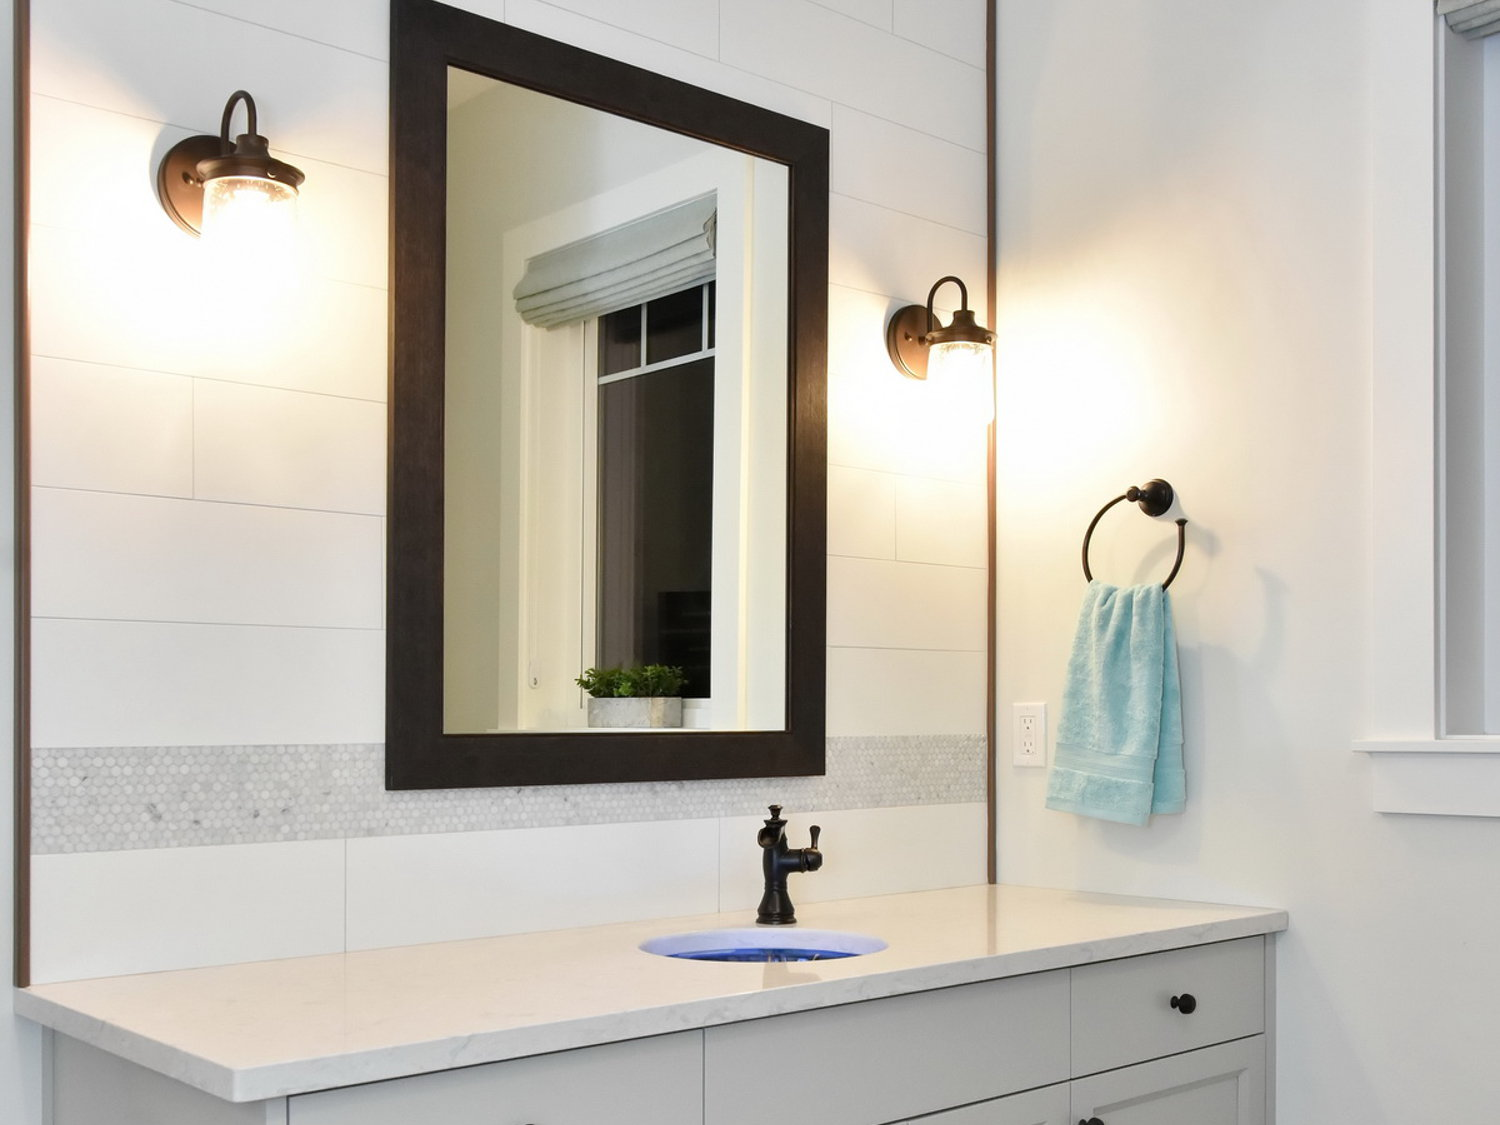 Kichler Wall Sconce in Oil Rubbed Bronze, Delta Trough style faucet